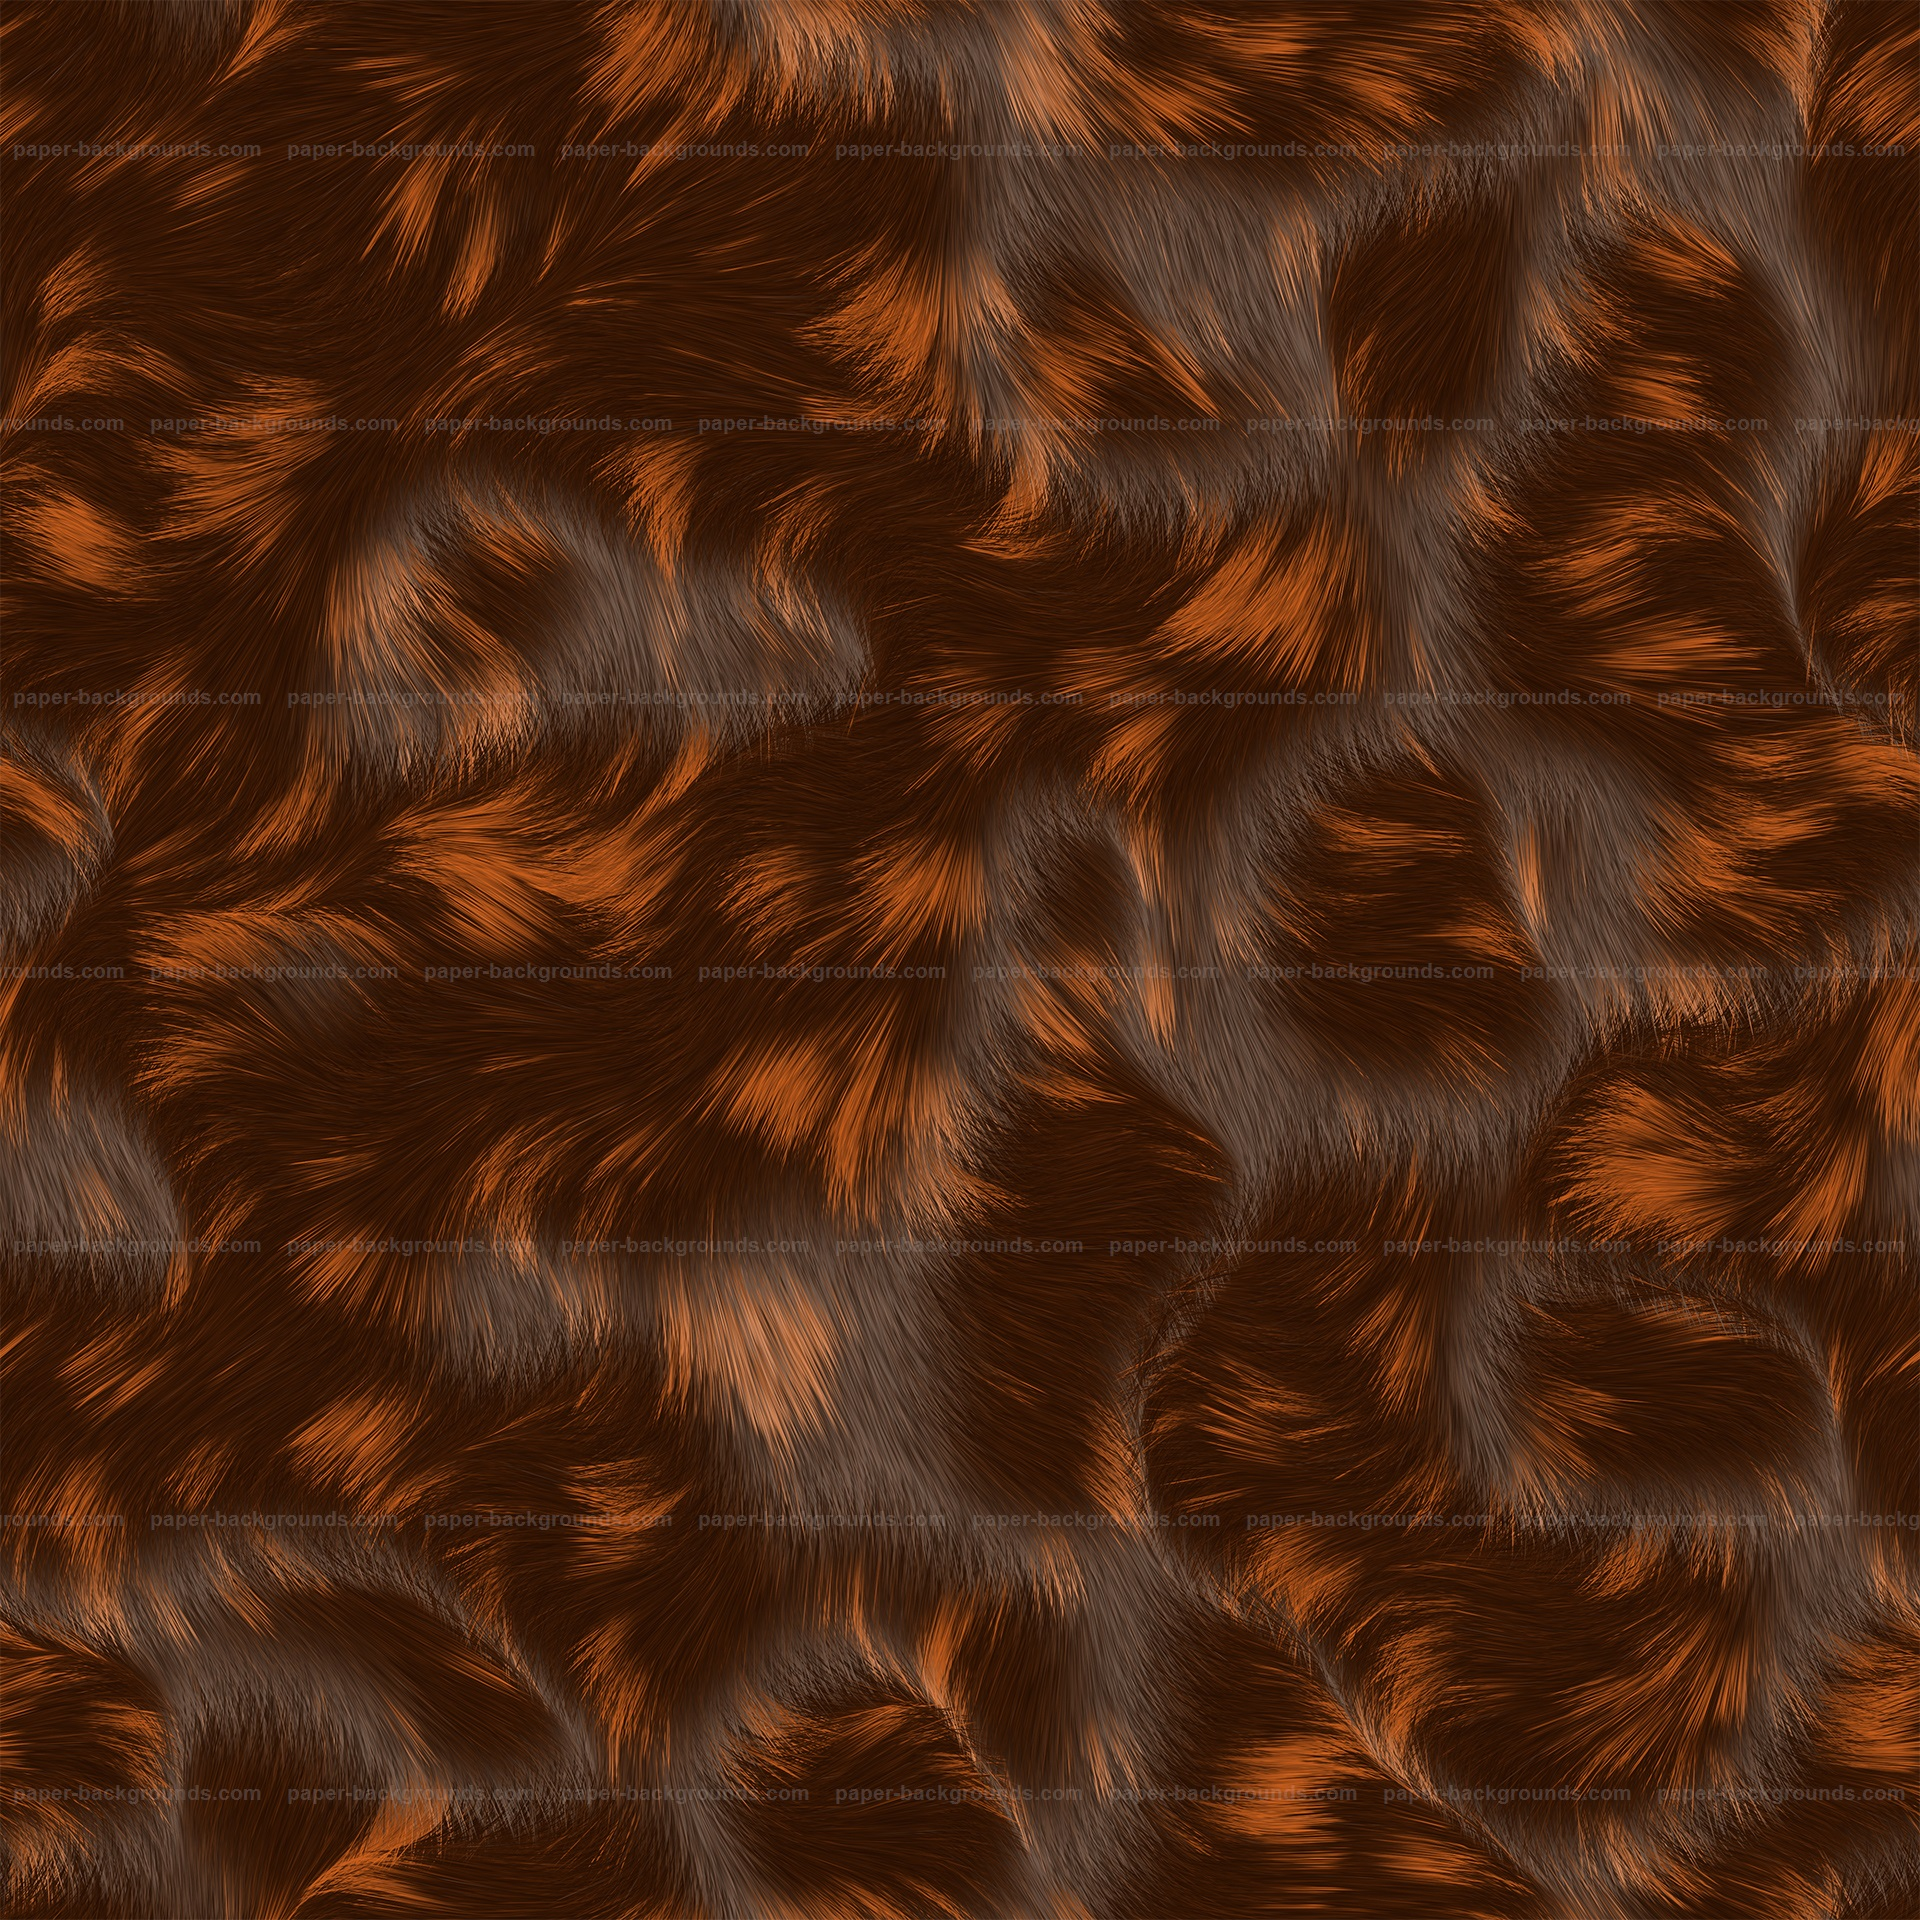 Brown bed sheets texture - Seamless Brown Animal For Bed Head Texture Hd